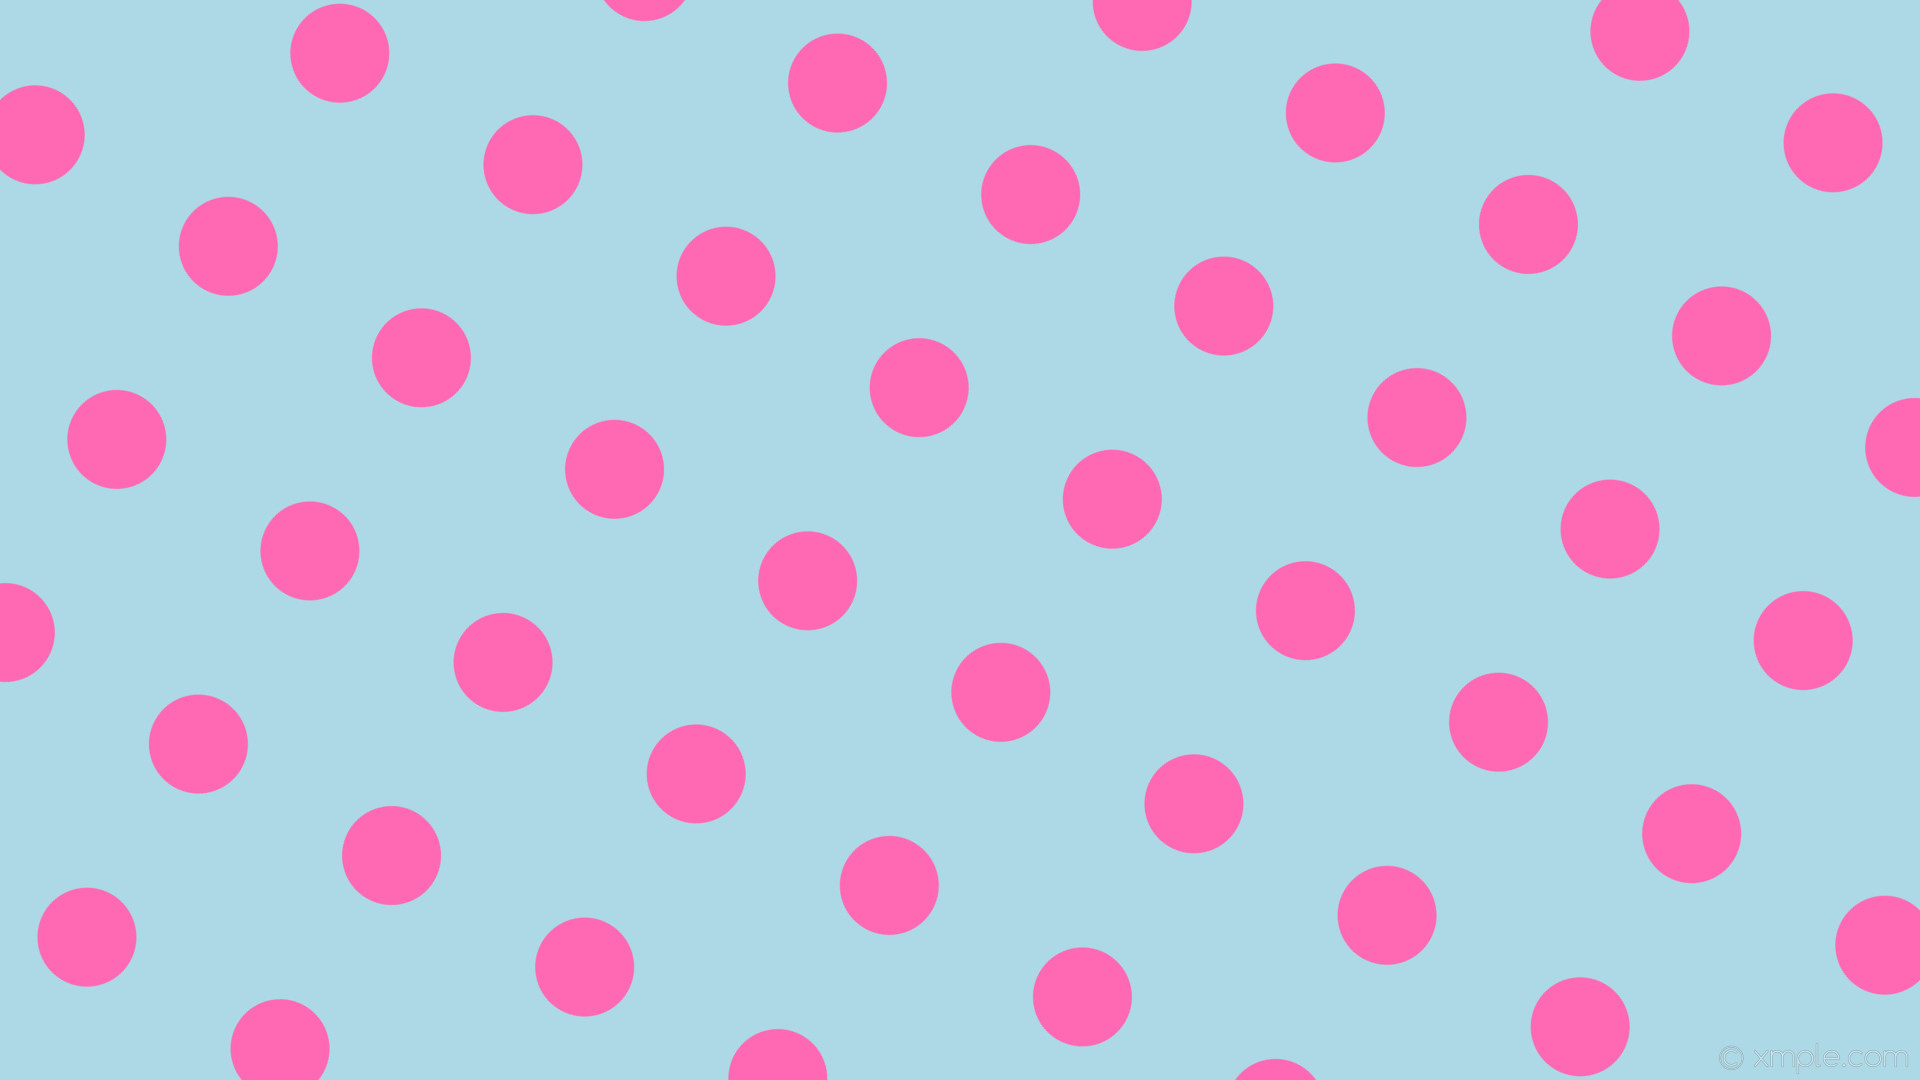 wallpaper pink blue dots polka spots light blue hot pink #add8e6 #ff69b4  150°